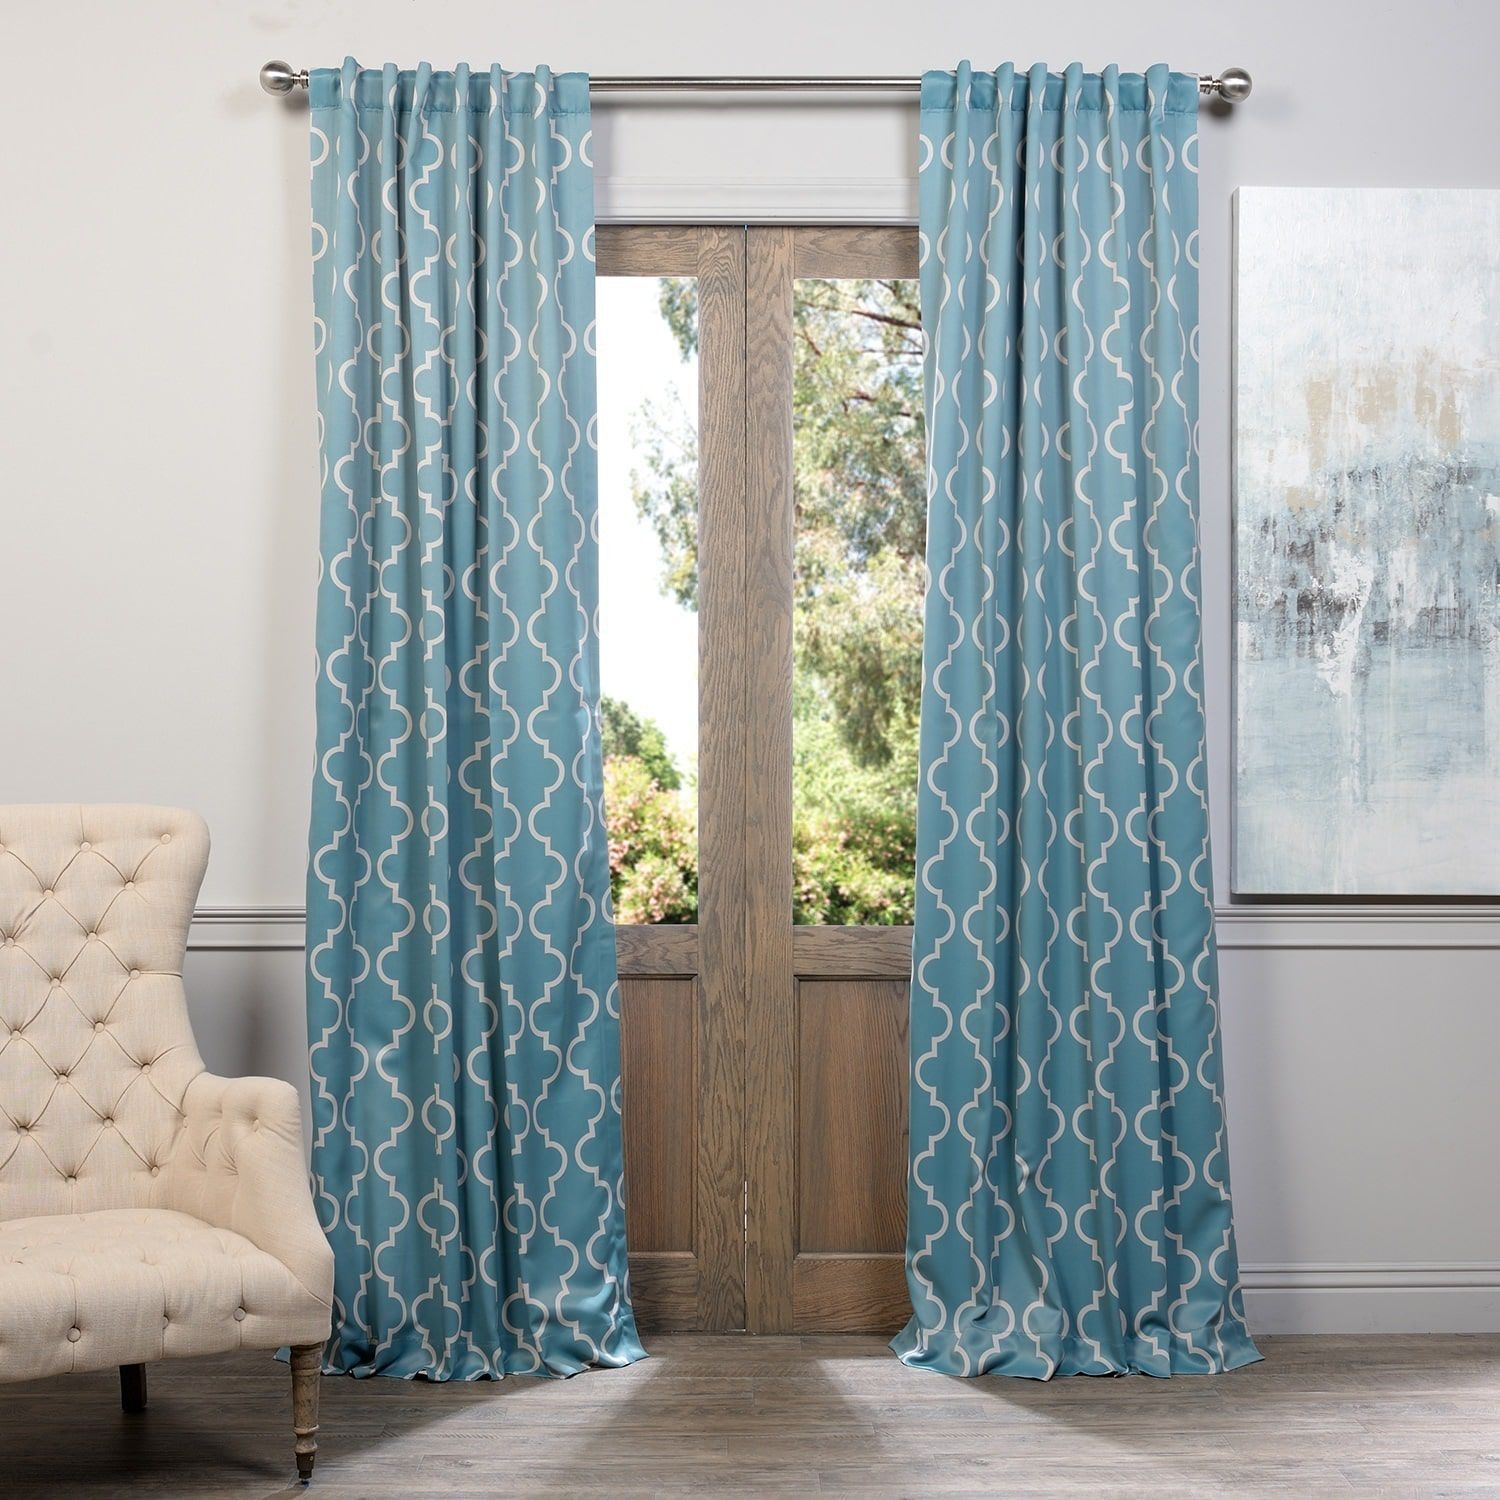 v royal panels cool blackout curtain thevol jpg curtins curtains sheer cur sears blue roy panorgz